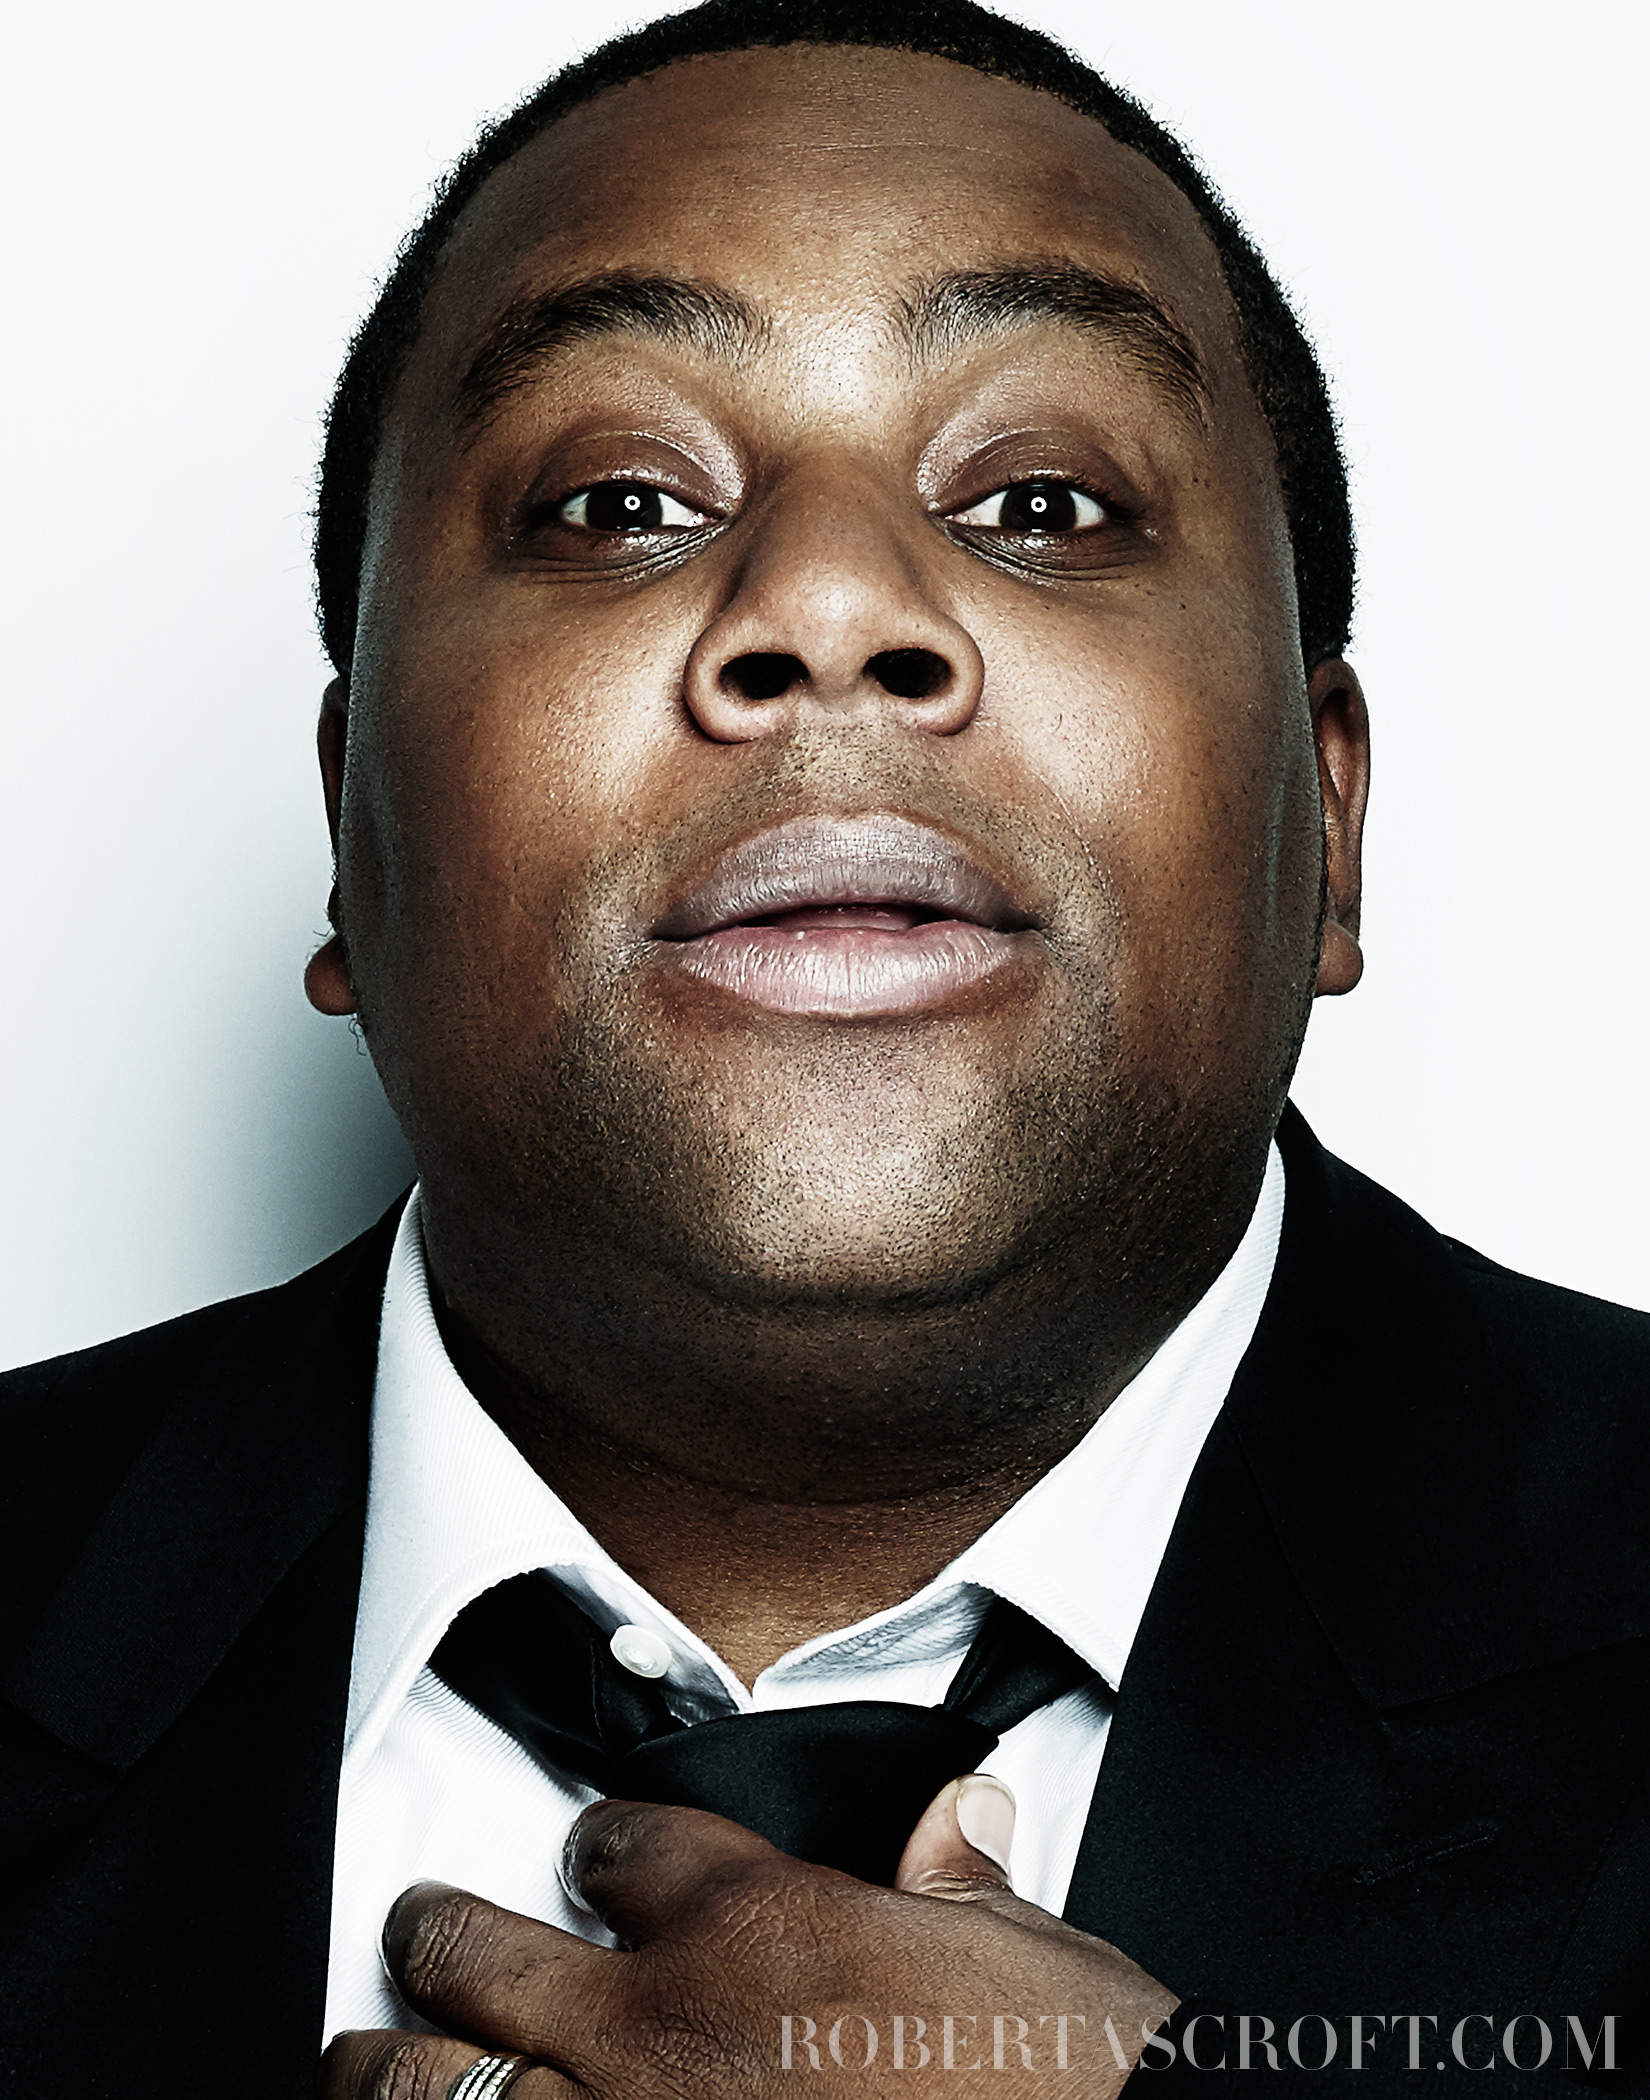 Kenan-Thompson-by-Robert-Ascroft